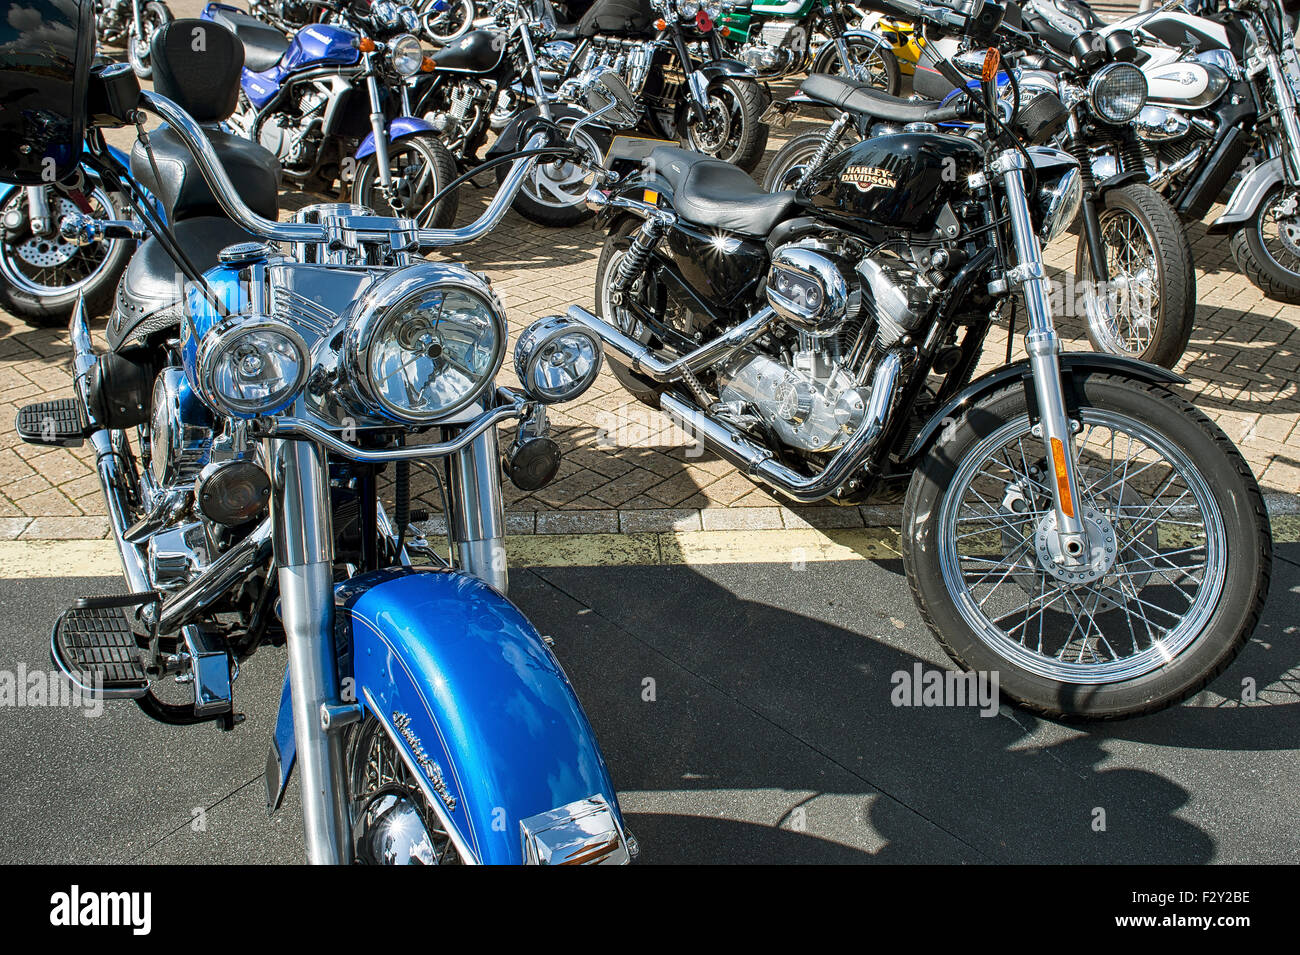 a collection of harley davidson motorbikes parked up. - Stock Image